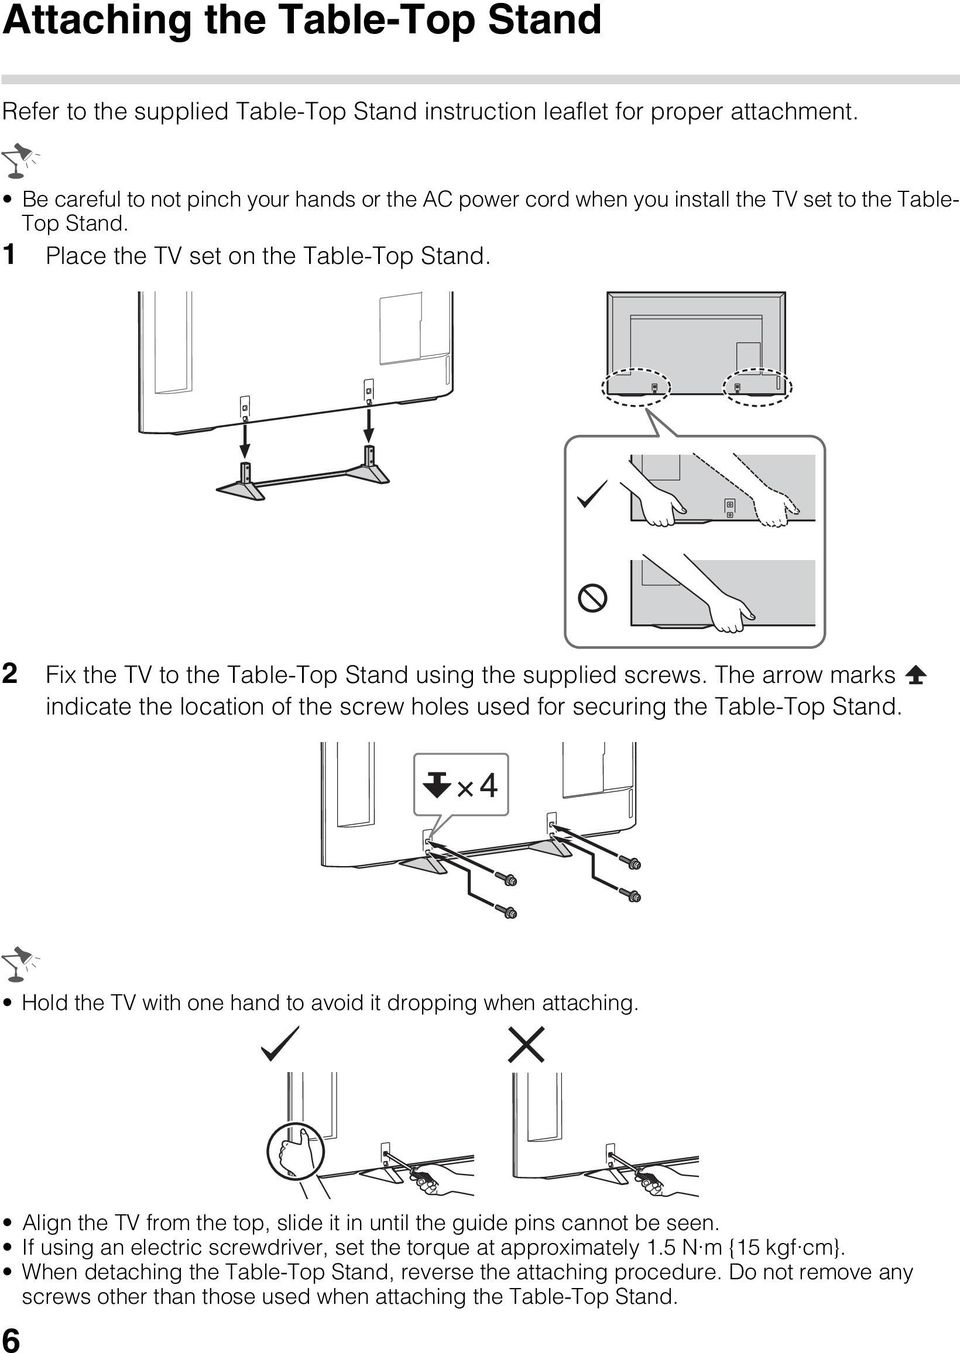 Television Operating Instructions Sony Customer Support 1 Power Diagram Besides Apple Tv Cable Box Connections On Cord 2 Fix The To Table Top Stand Using Supplied Screws